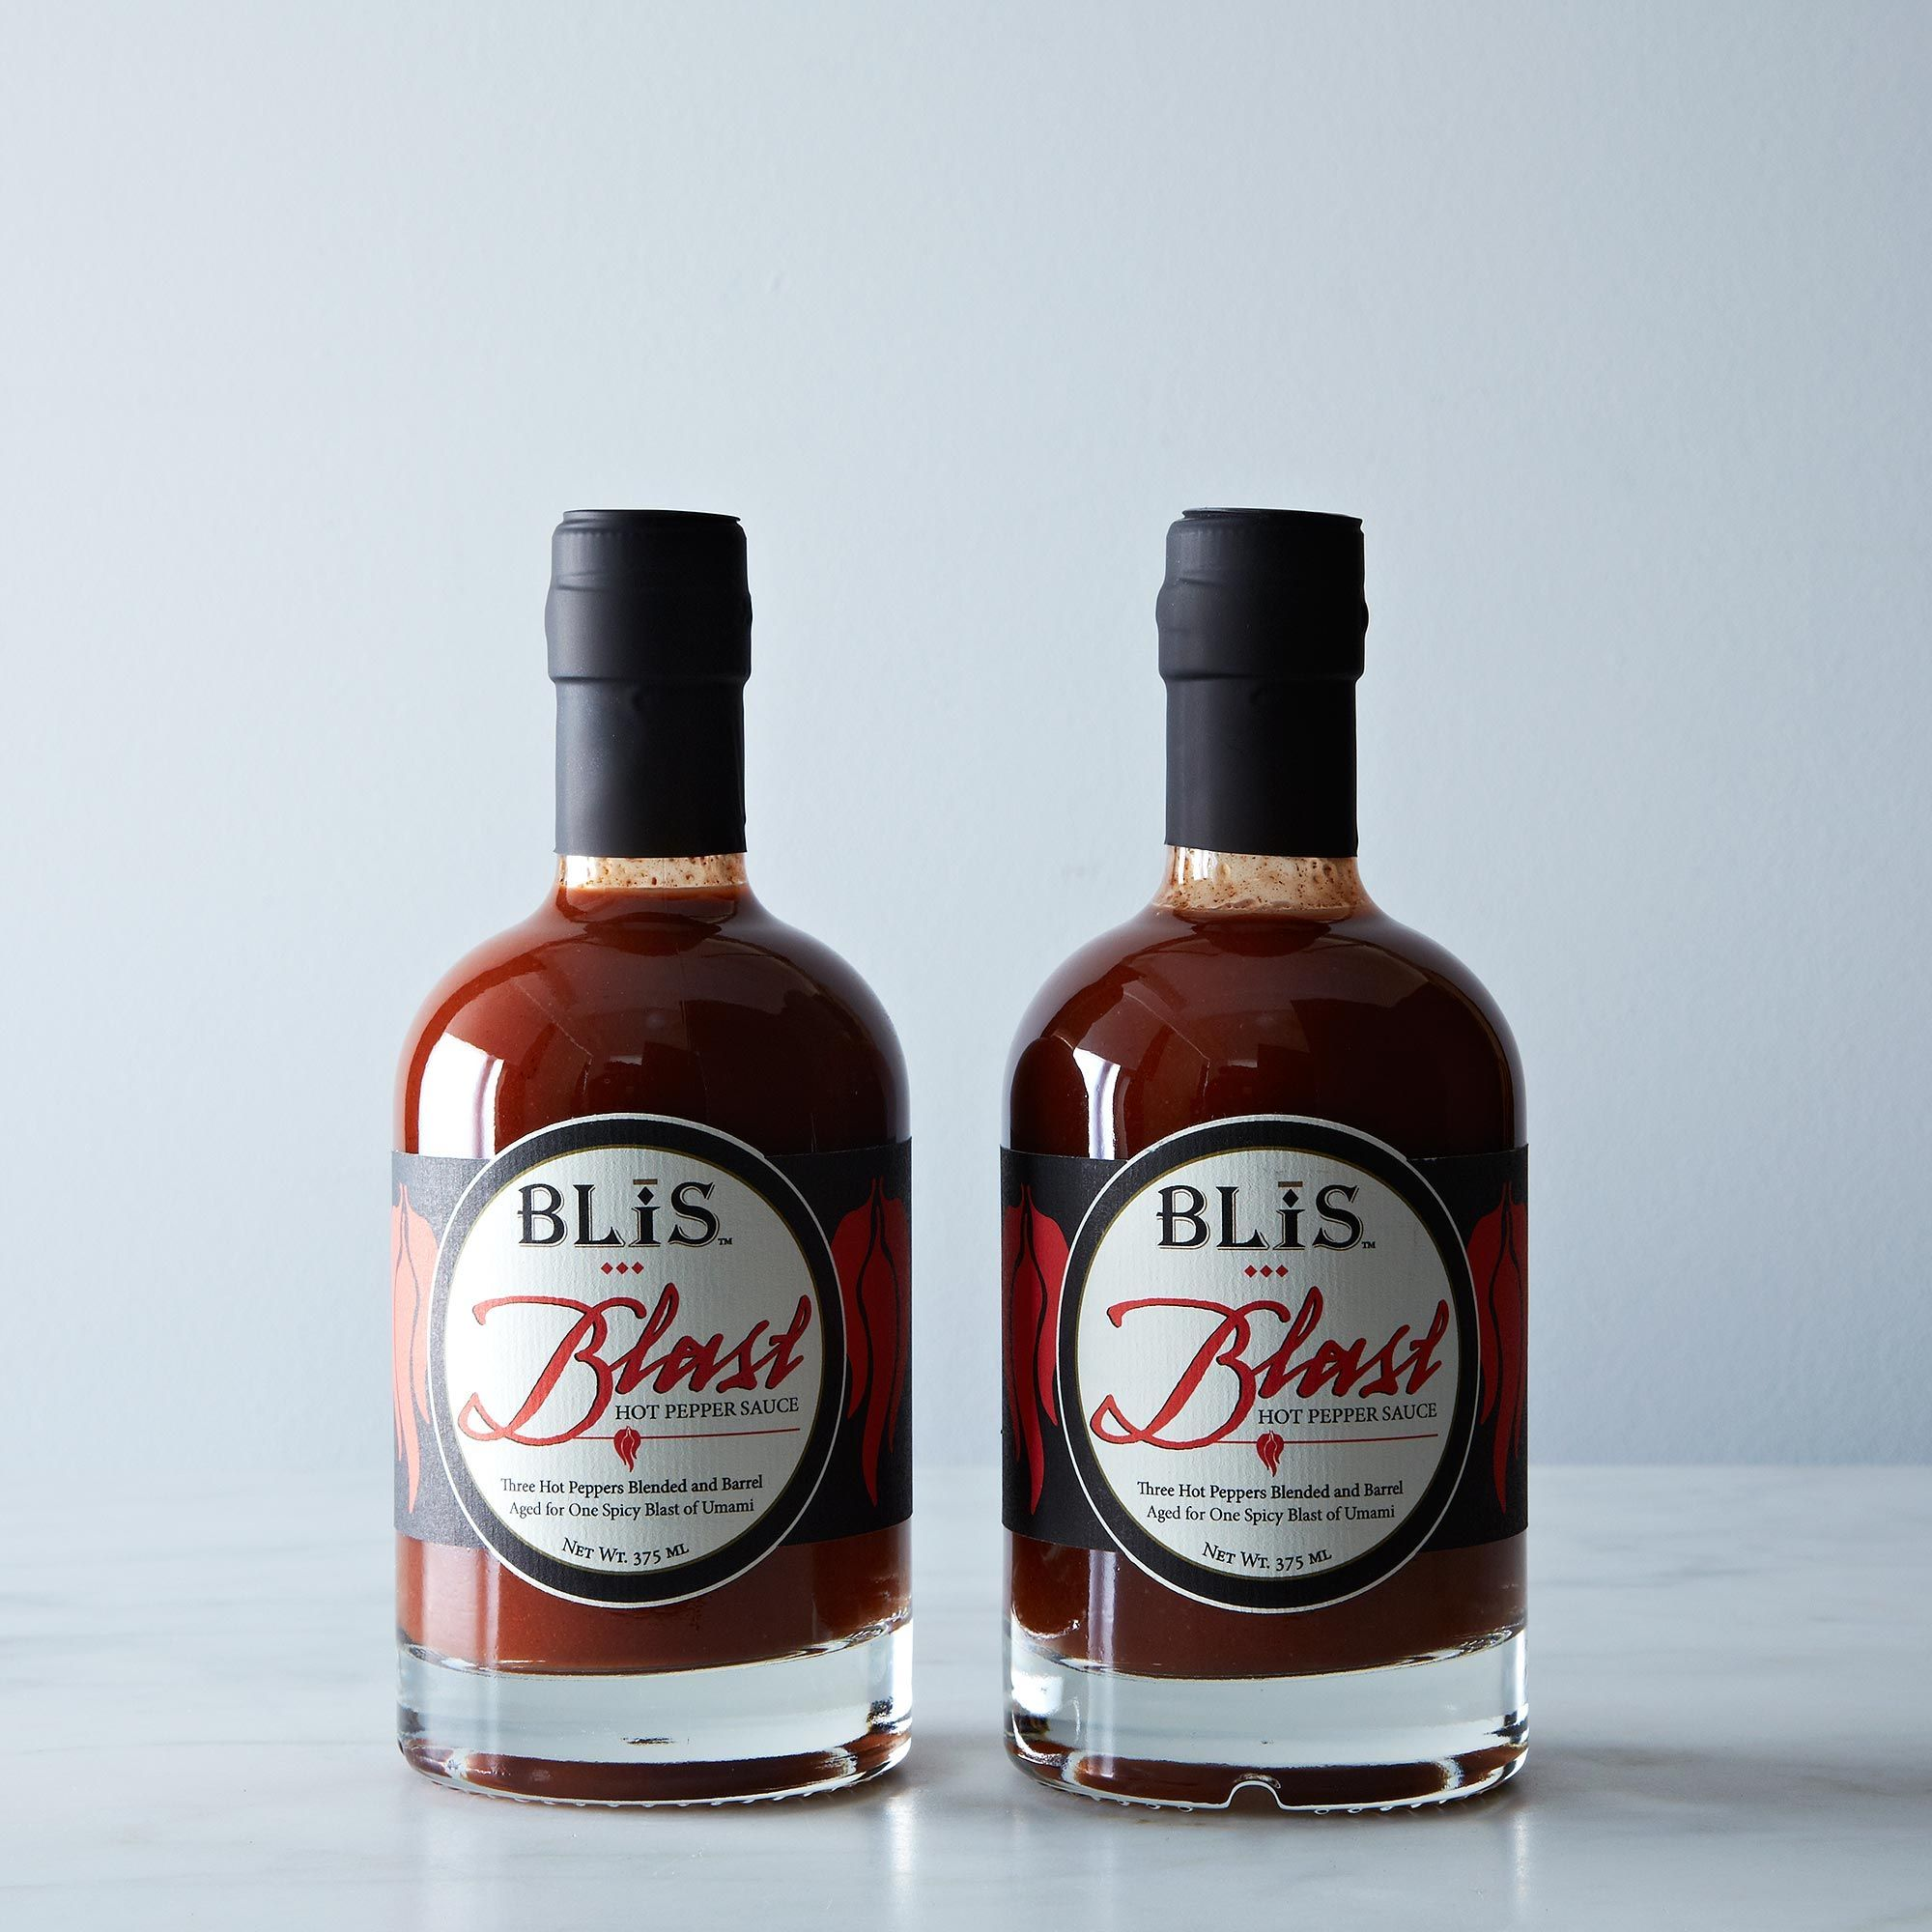 2eafa509-cb0f-4743-8489-f89664665fd3--2013-1123_blis_blis-blast-bourbon-hot-pepper-sauce_set-of-2-008